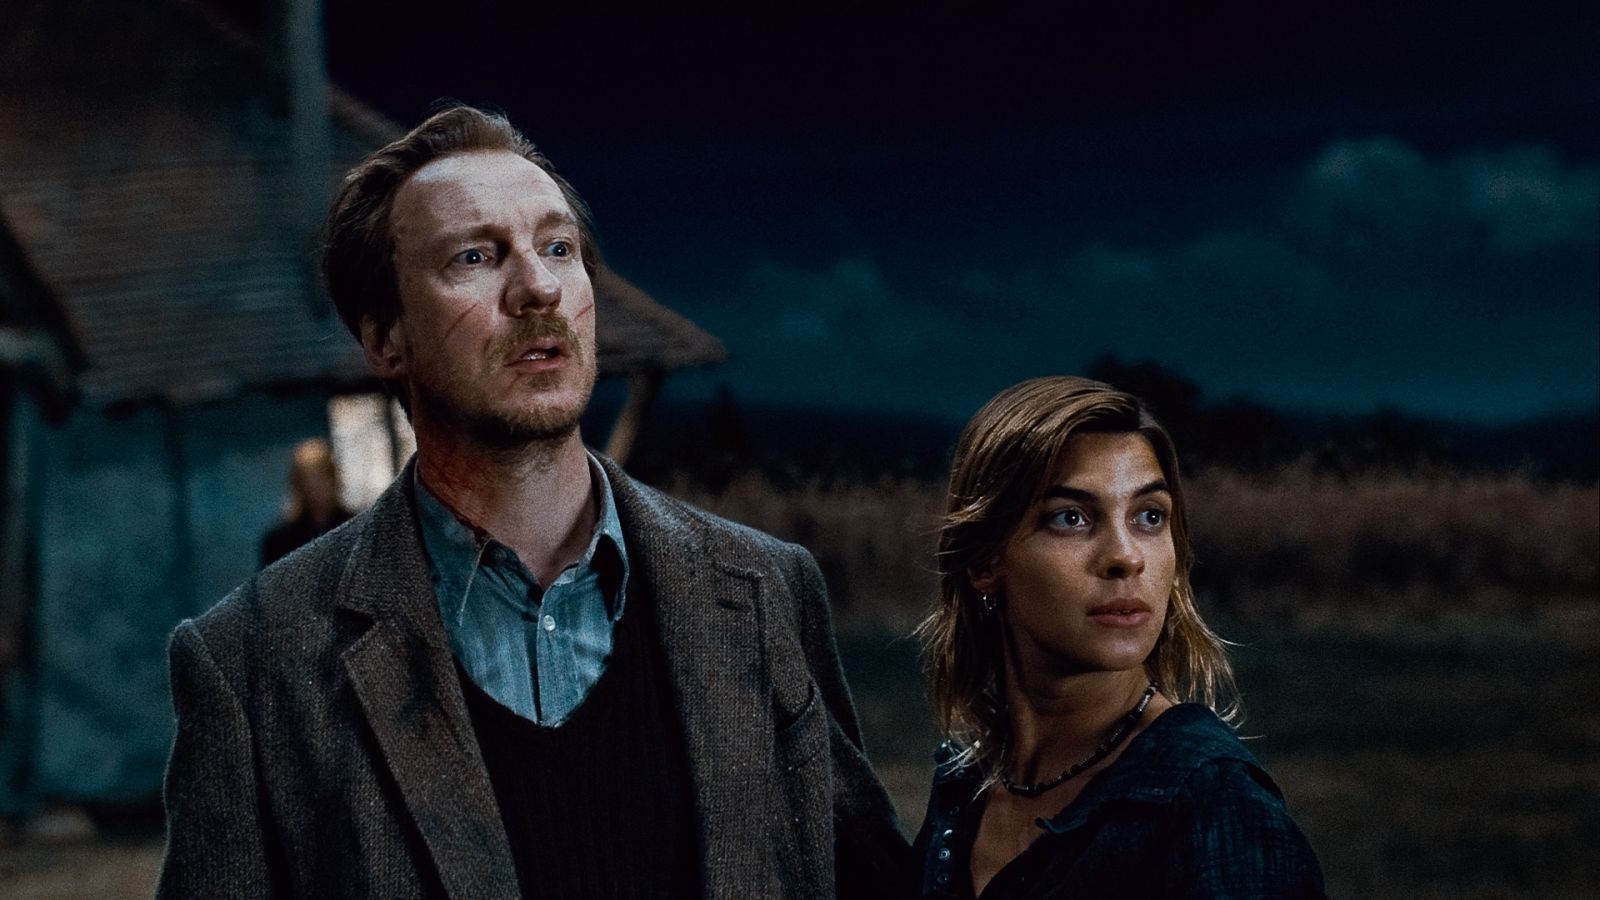 Tonks-and-Lupin-HP-7-1-tonks-and-lupin-1